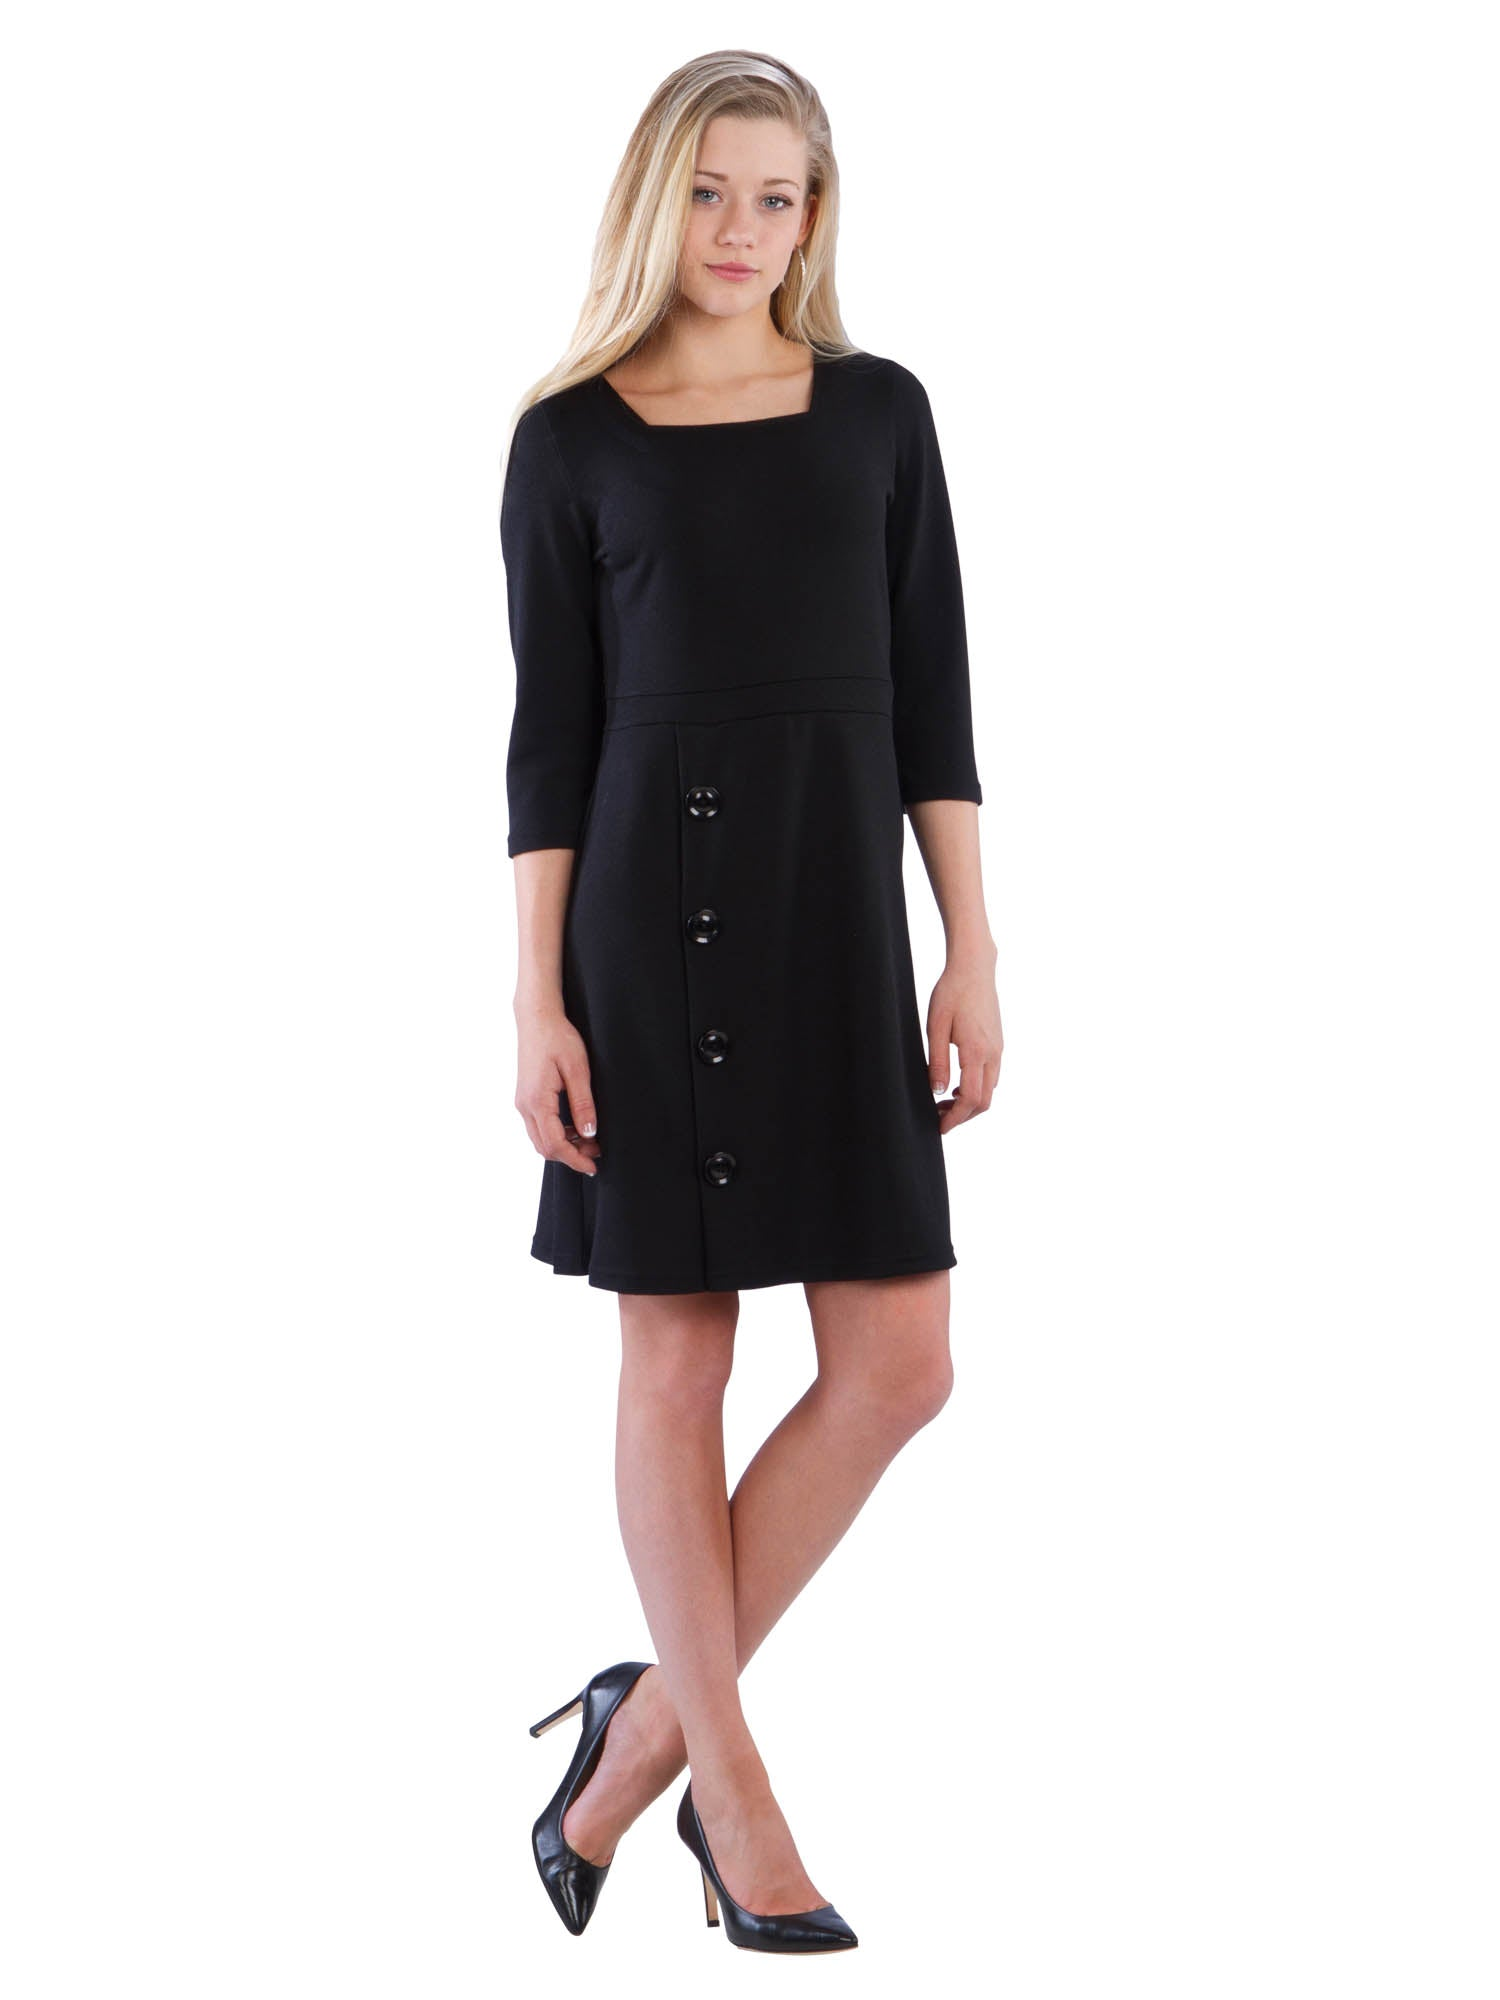 Square Neck Button Dress